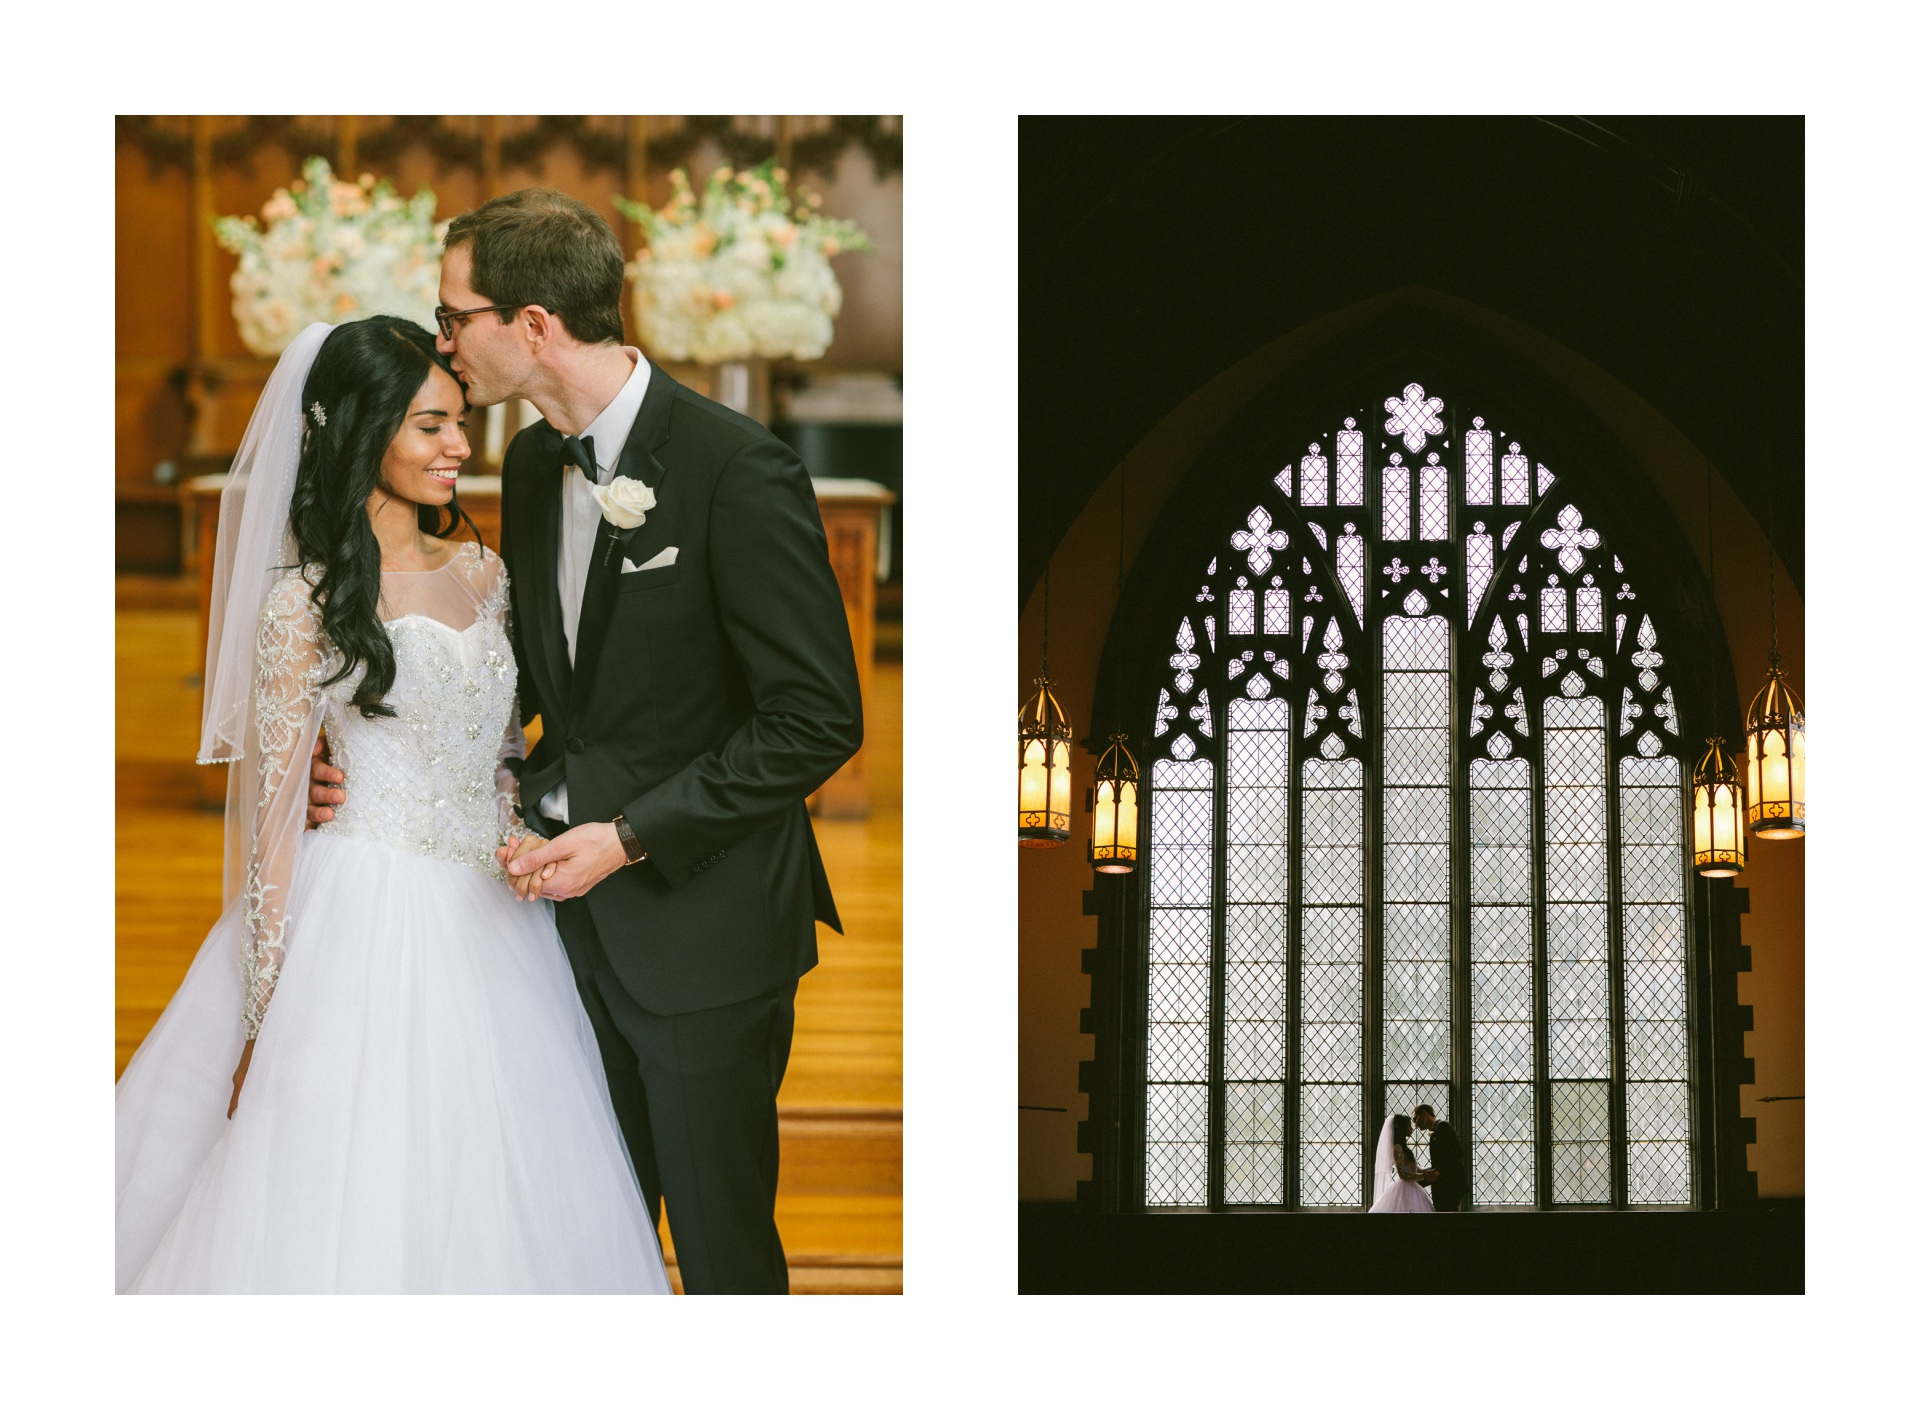 Severance Hall Wedding Photographer in Cleveland 36.jpg